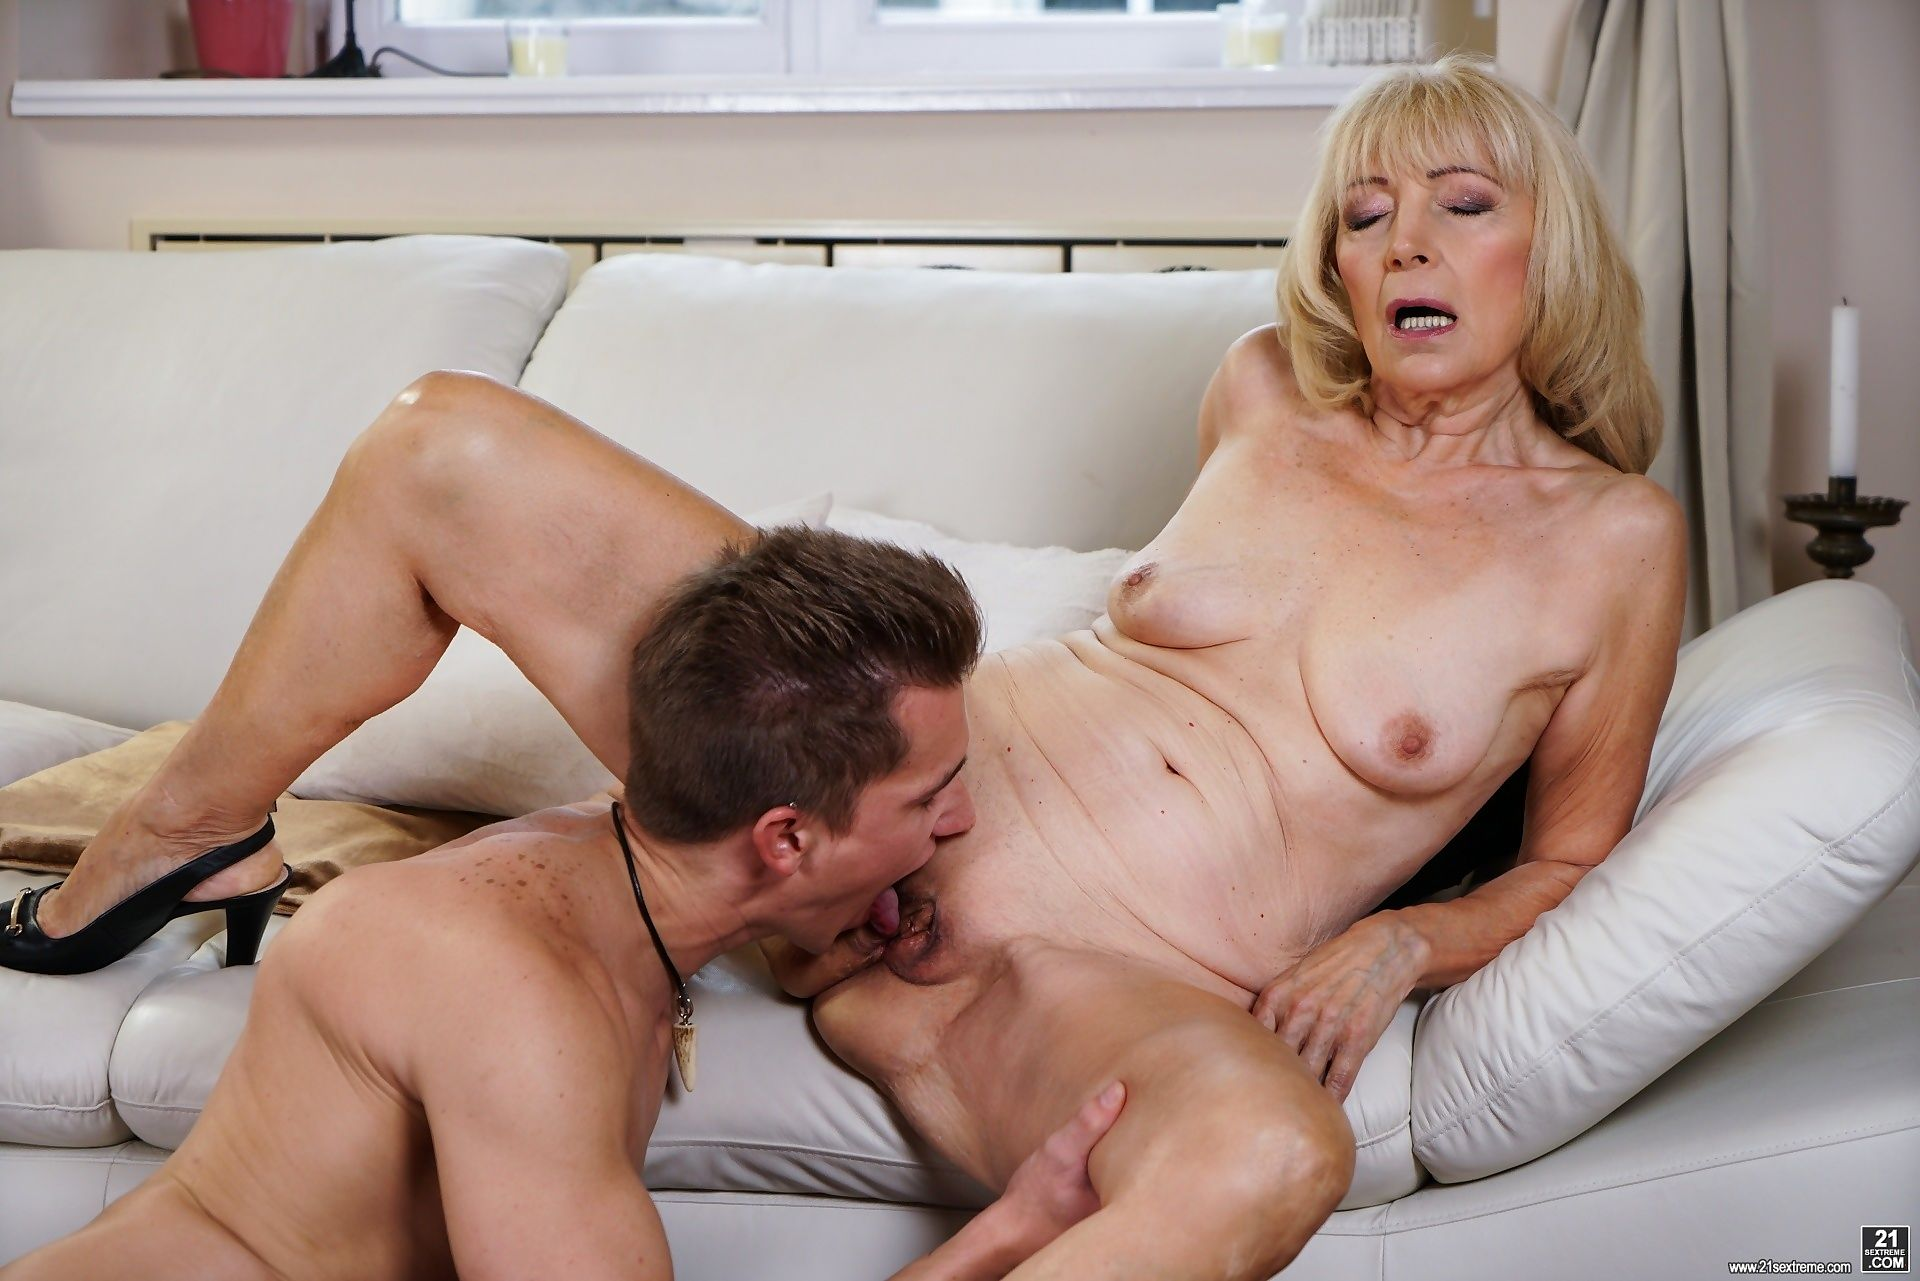 Young jason storm enjoys the very essence of life with szuzanne - part 2511